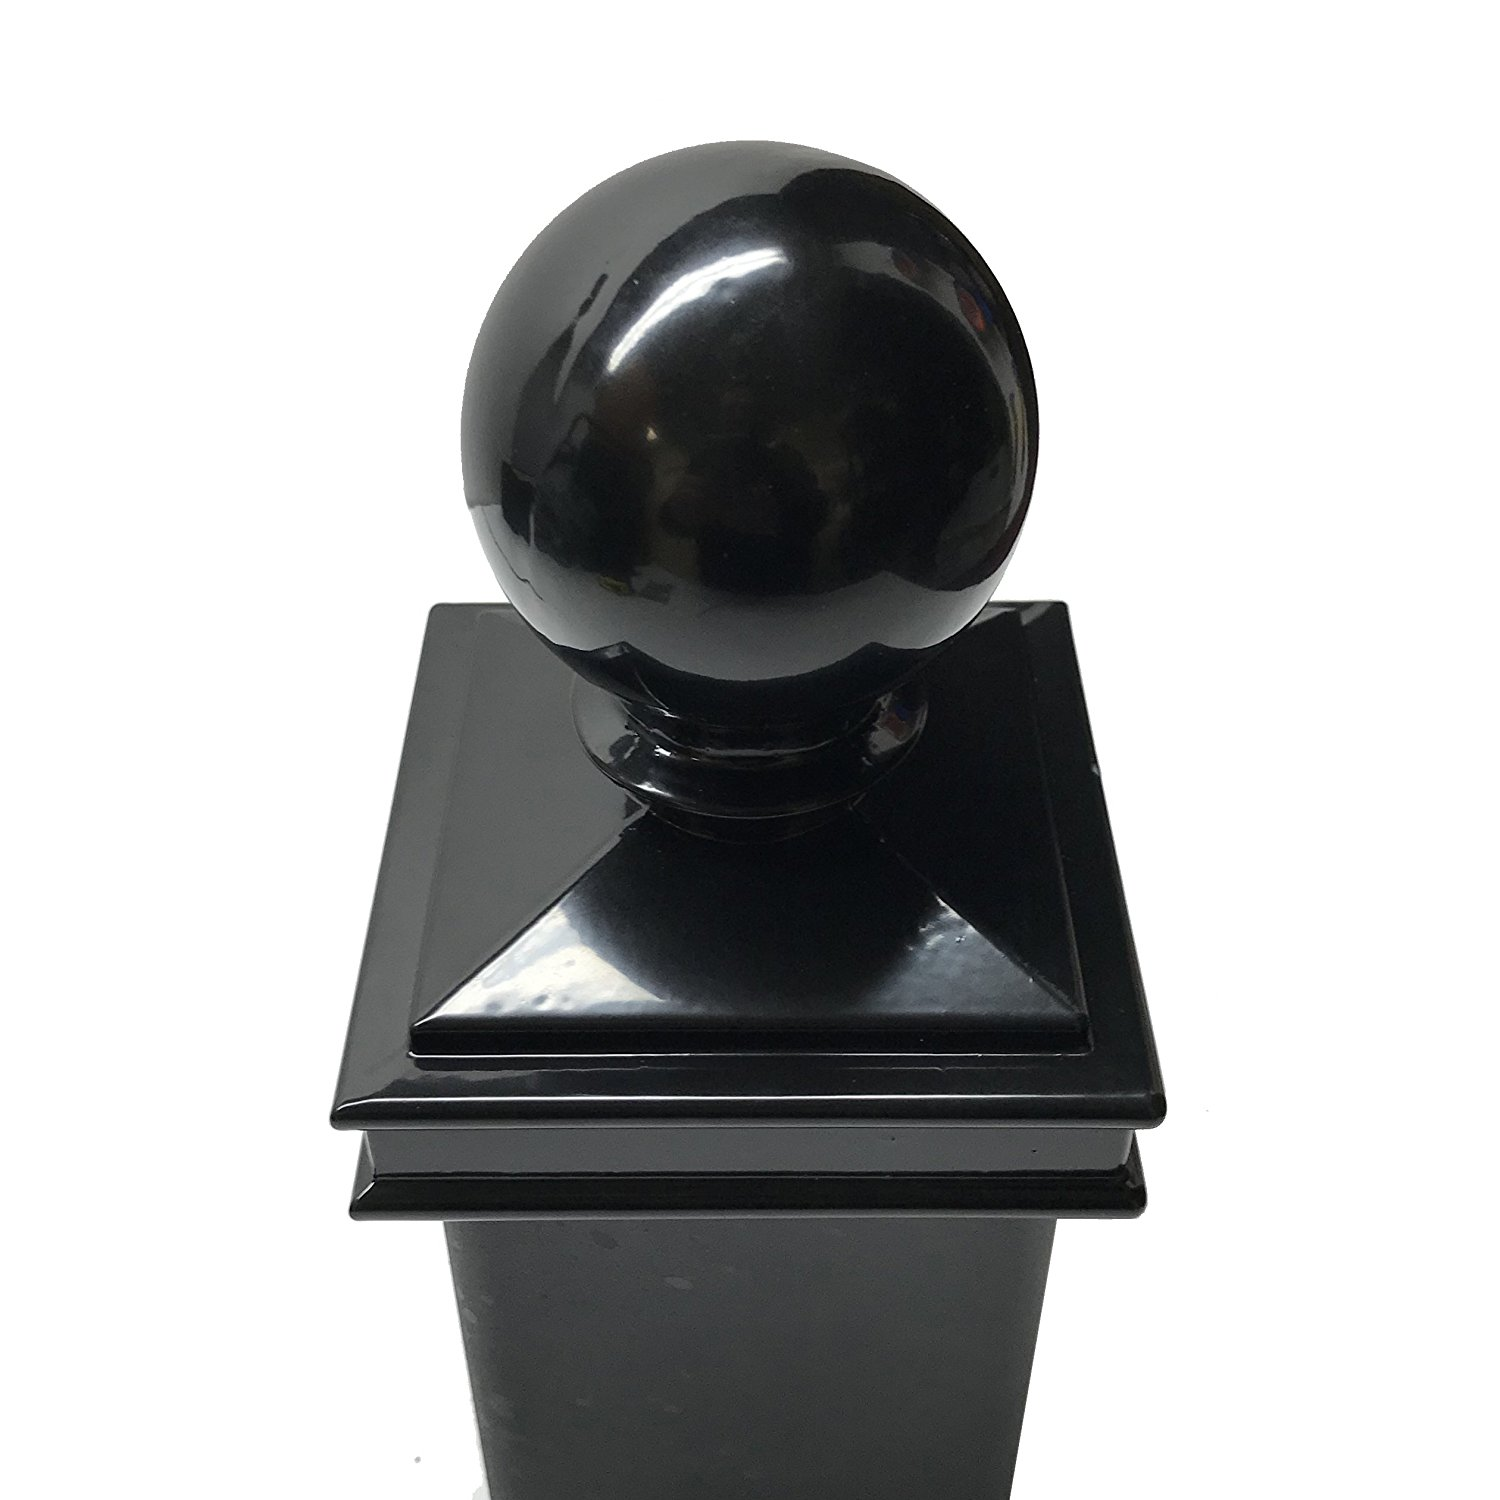 "Decorex Hardware Aluminium 3"" x 3"" Black Ball Post Cap For 3"" x 3 Metal Posts - Pressure Fit"